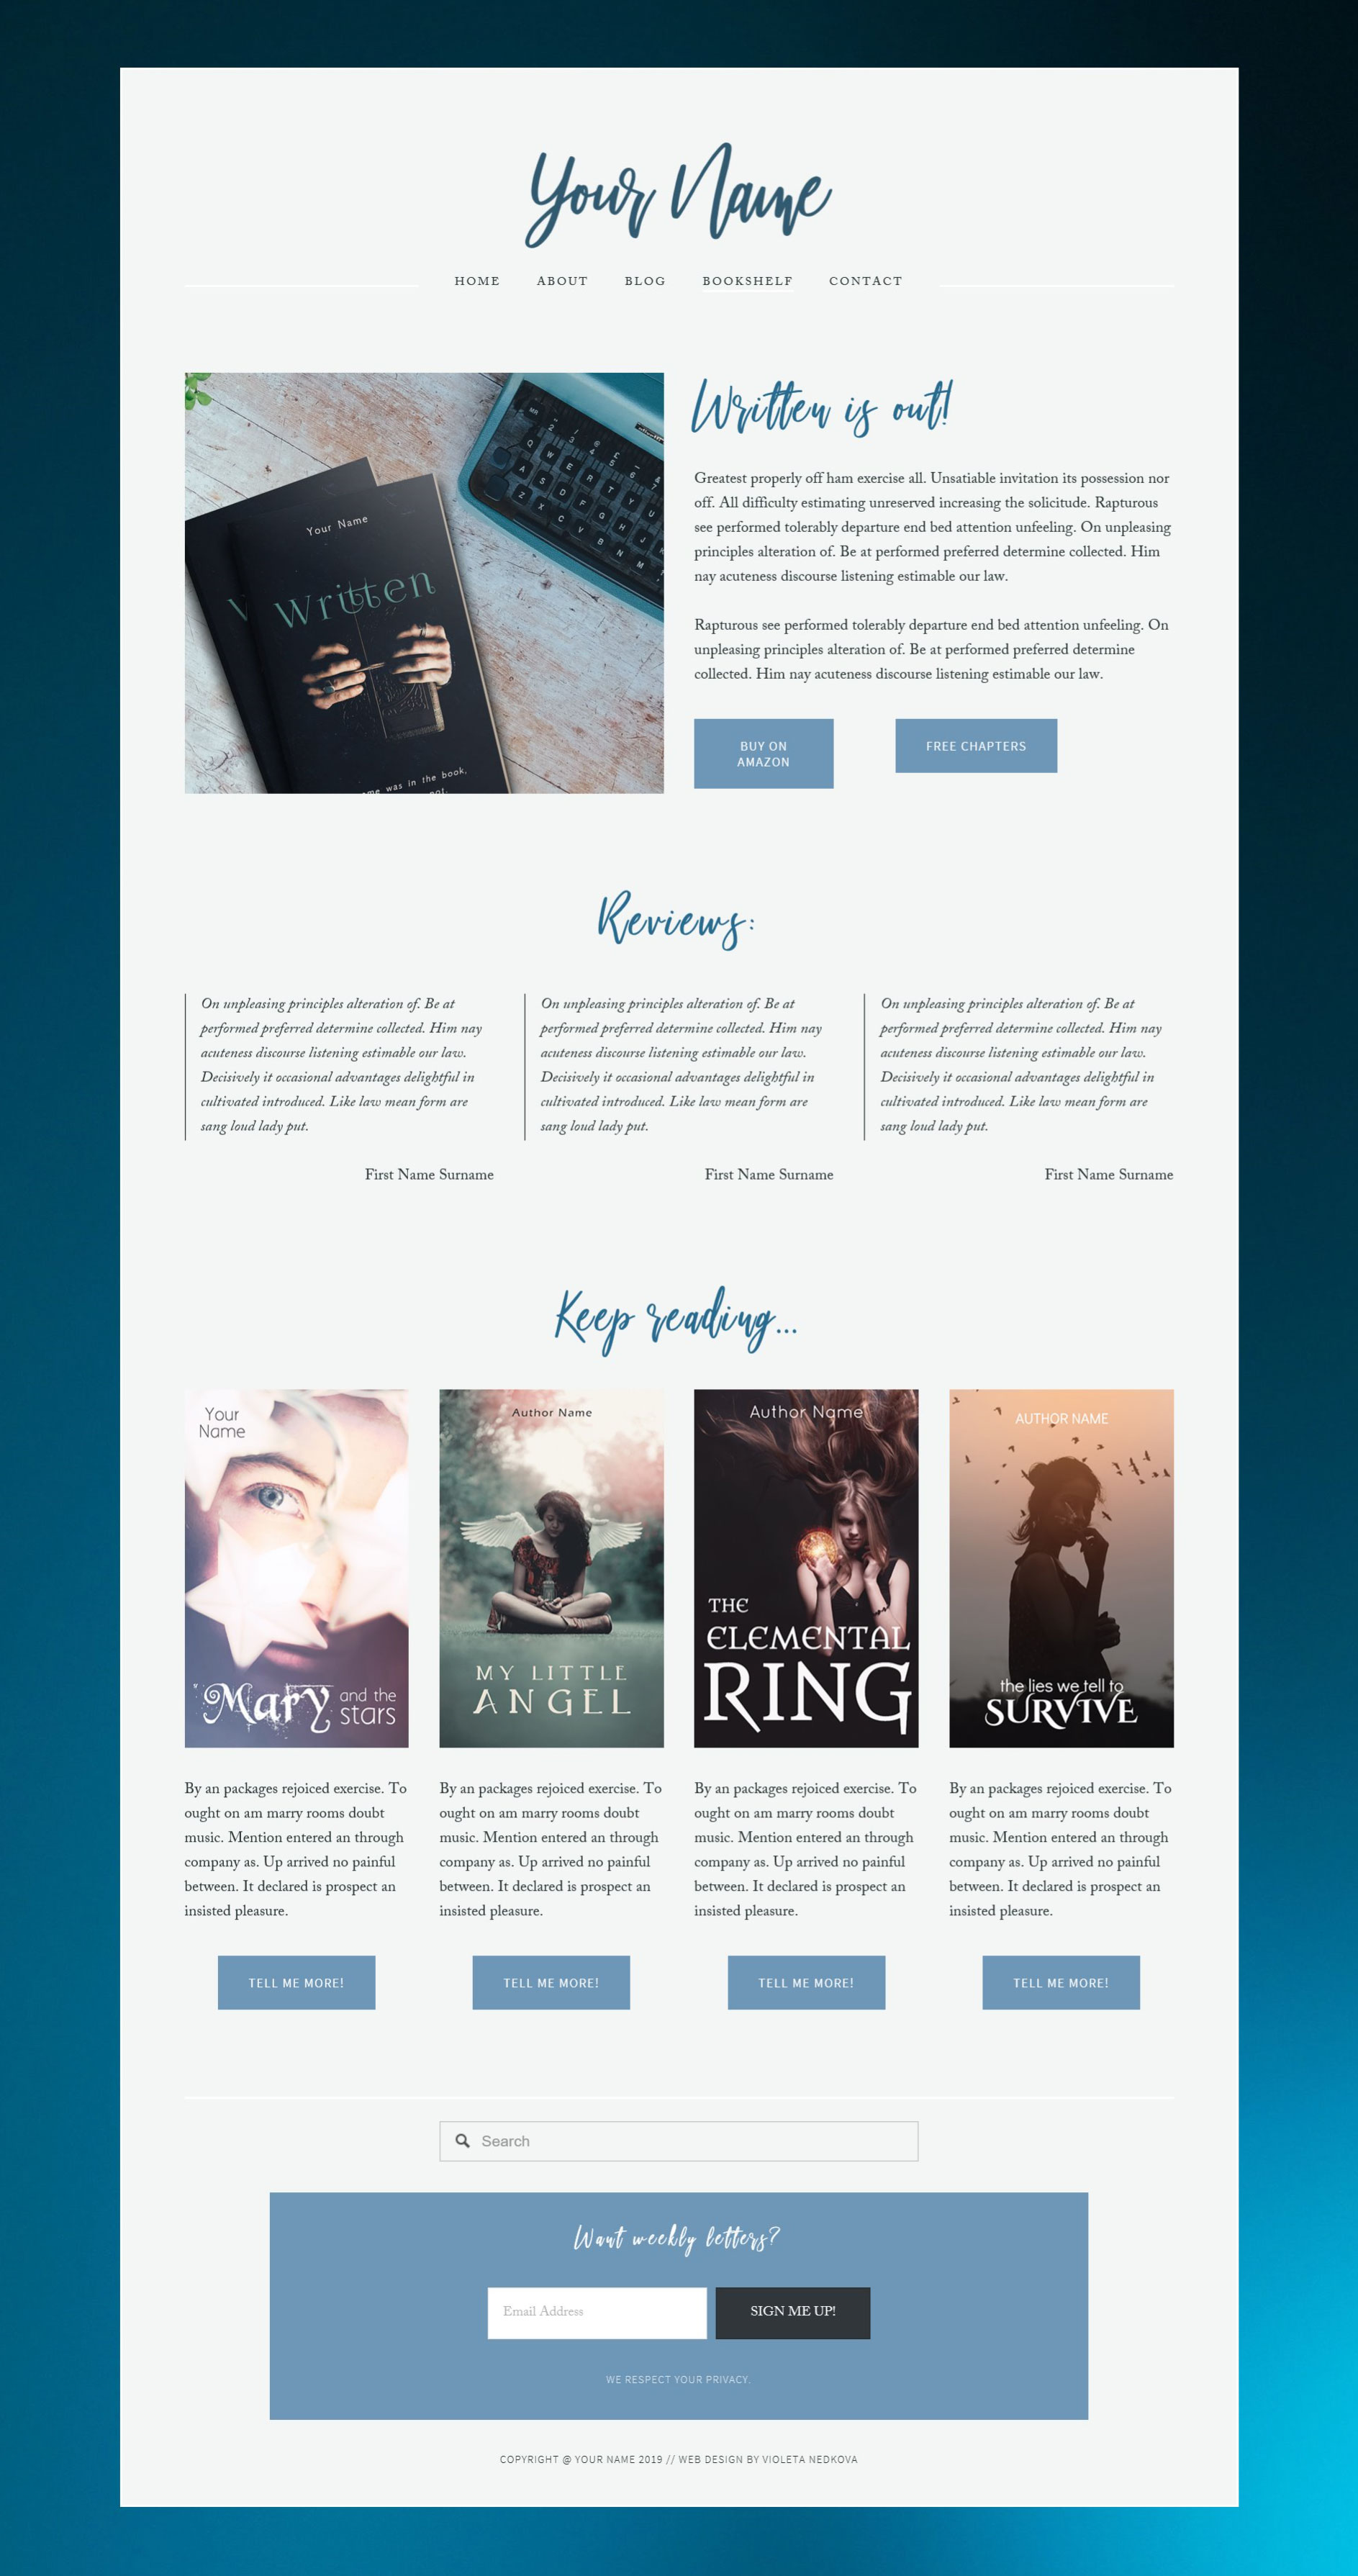 web-books-teal-final.jpg